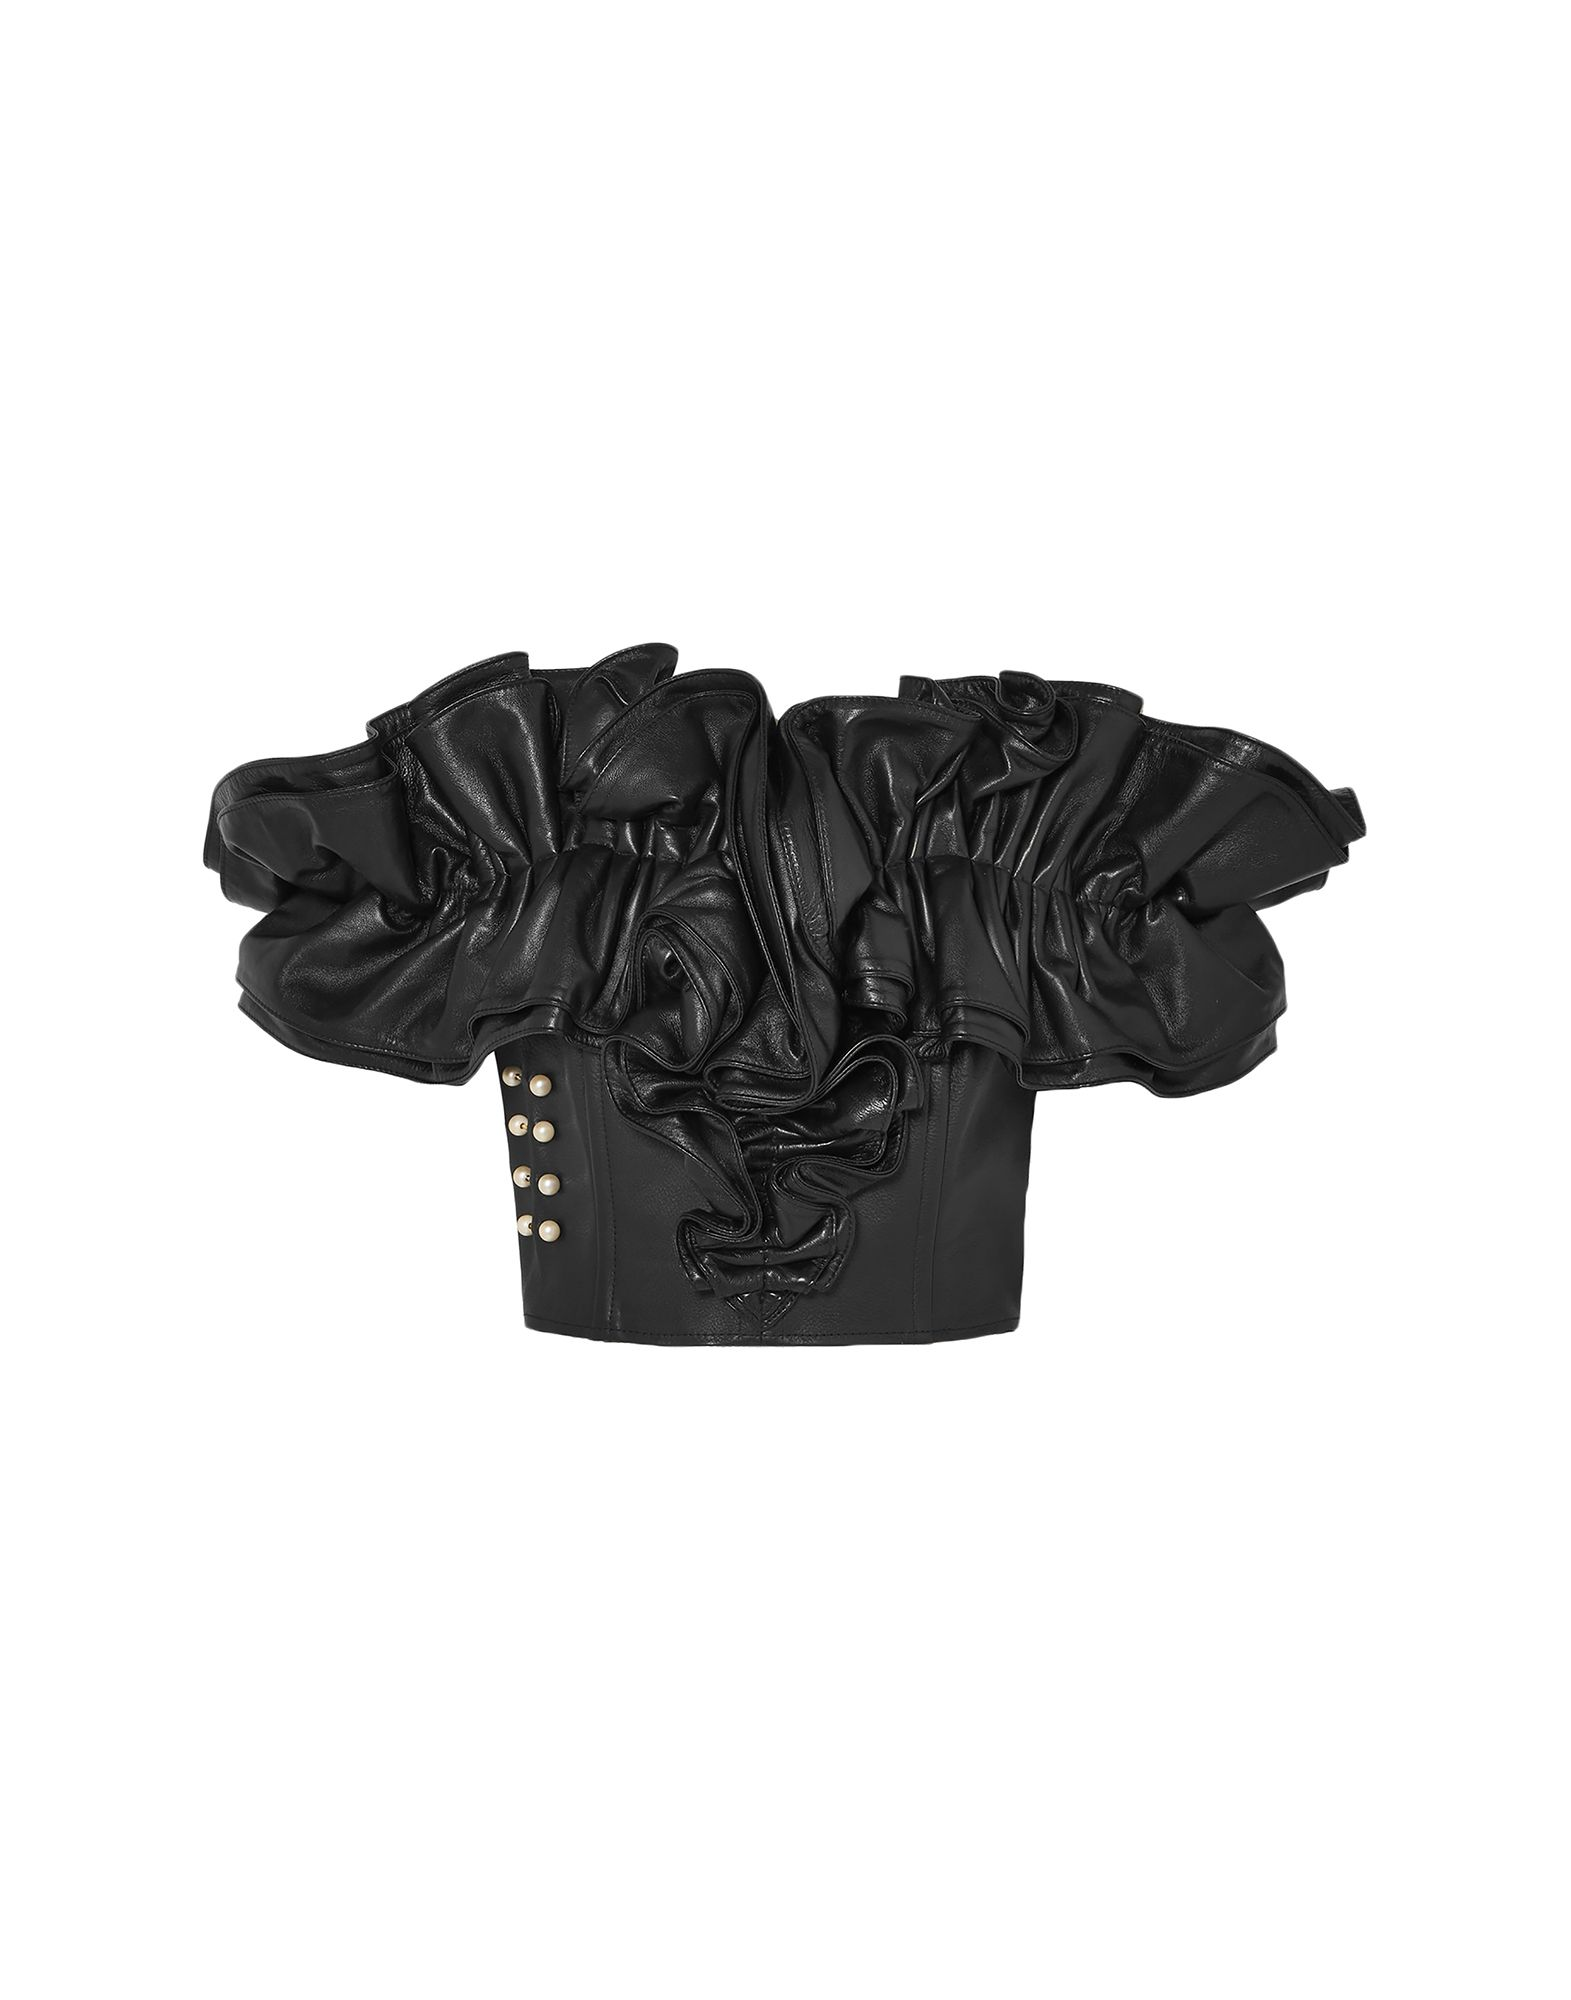 RODARTE Tops. leather, ruffles, beads, solid color, wide neckline, short sleeves, rear closure, zipper closure, fully lined, contains non-textile parts of animal origin. 75% Lambskin, 25% Bovine leather